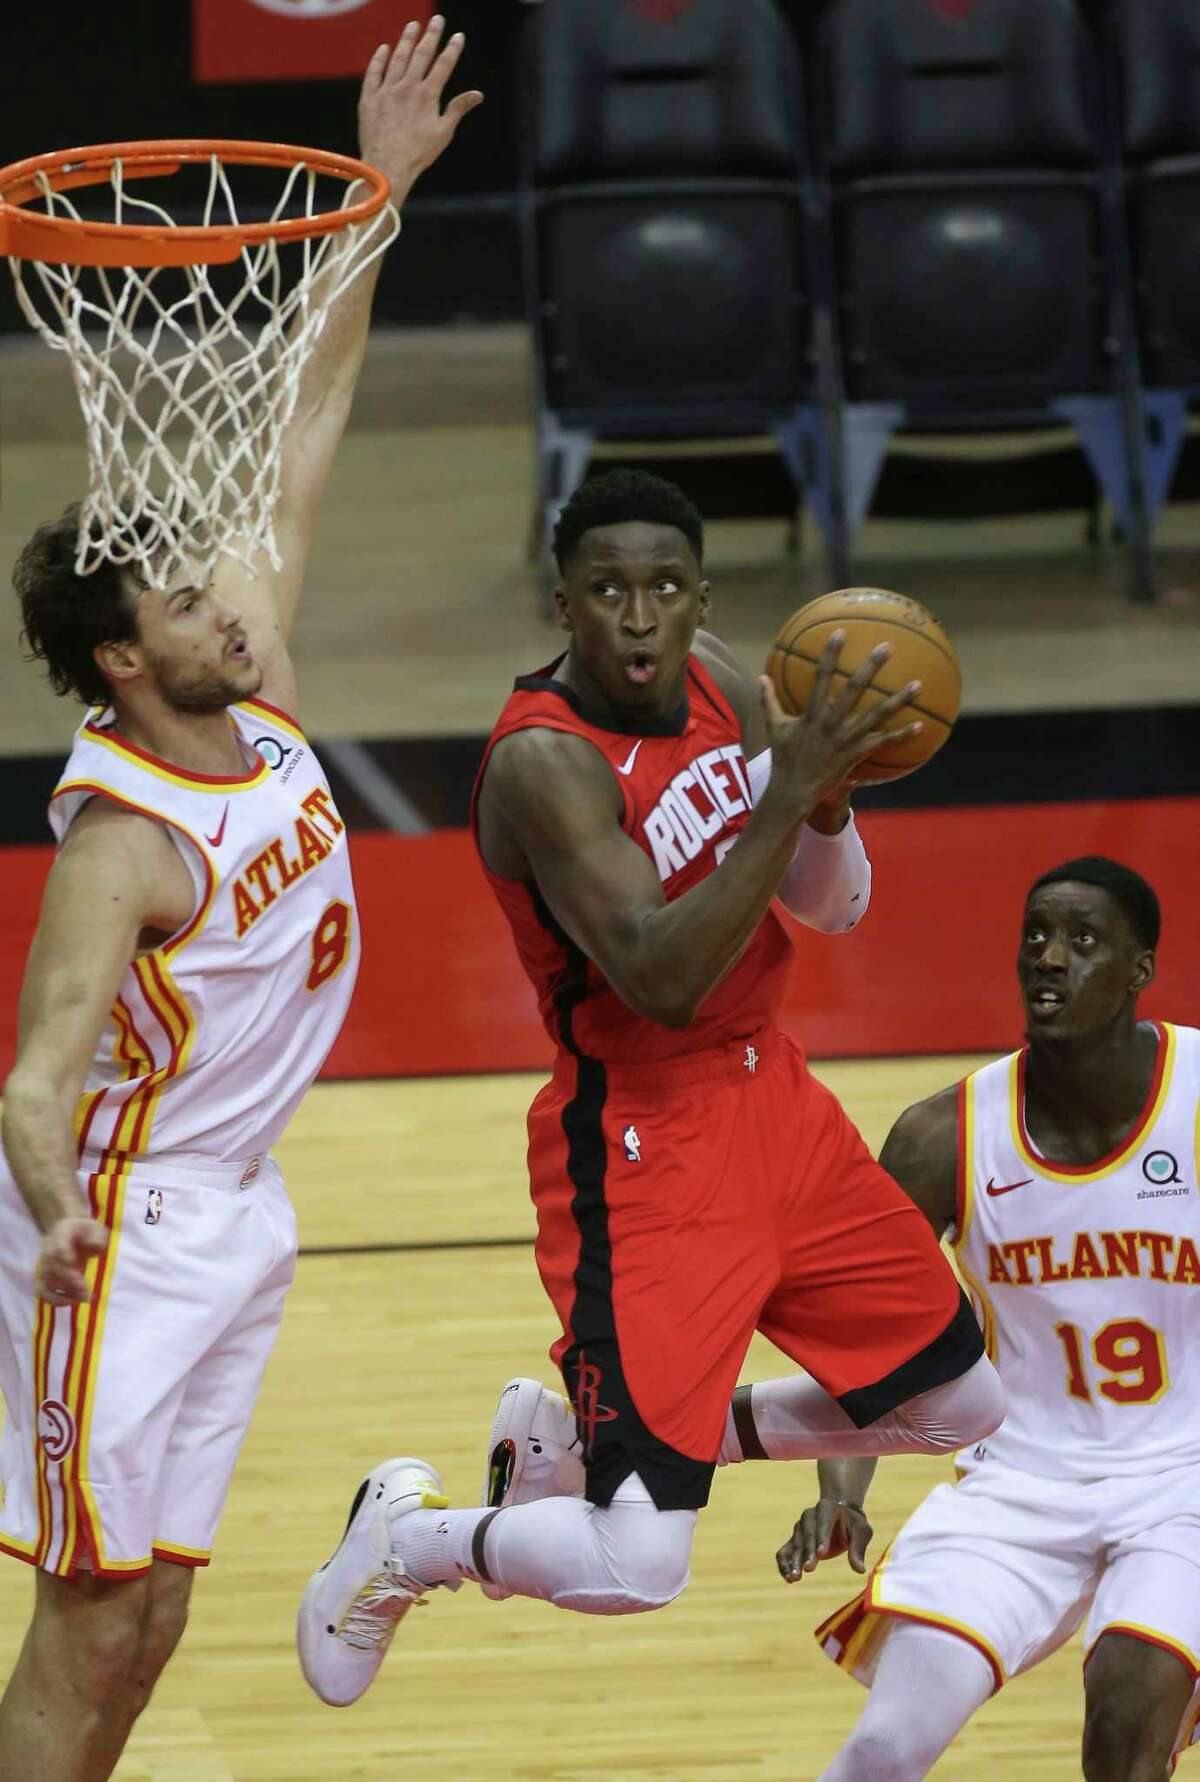 Houston Rockets guard Victor Oladipo (7) goes for the basket during the fourth quarter of the NBA game against the Atlanta Hawks Tuesday, March 16, 2021, at Toyota Center in Houston.